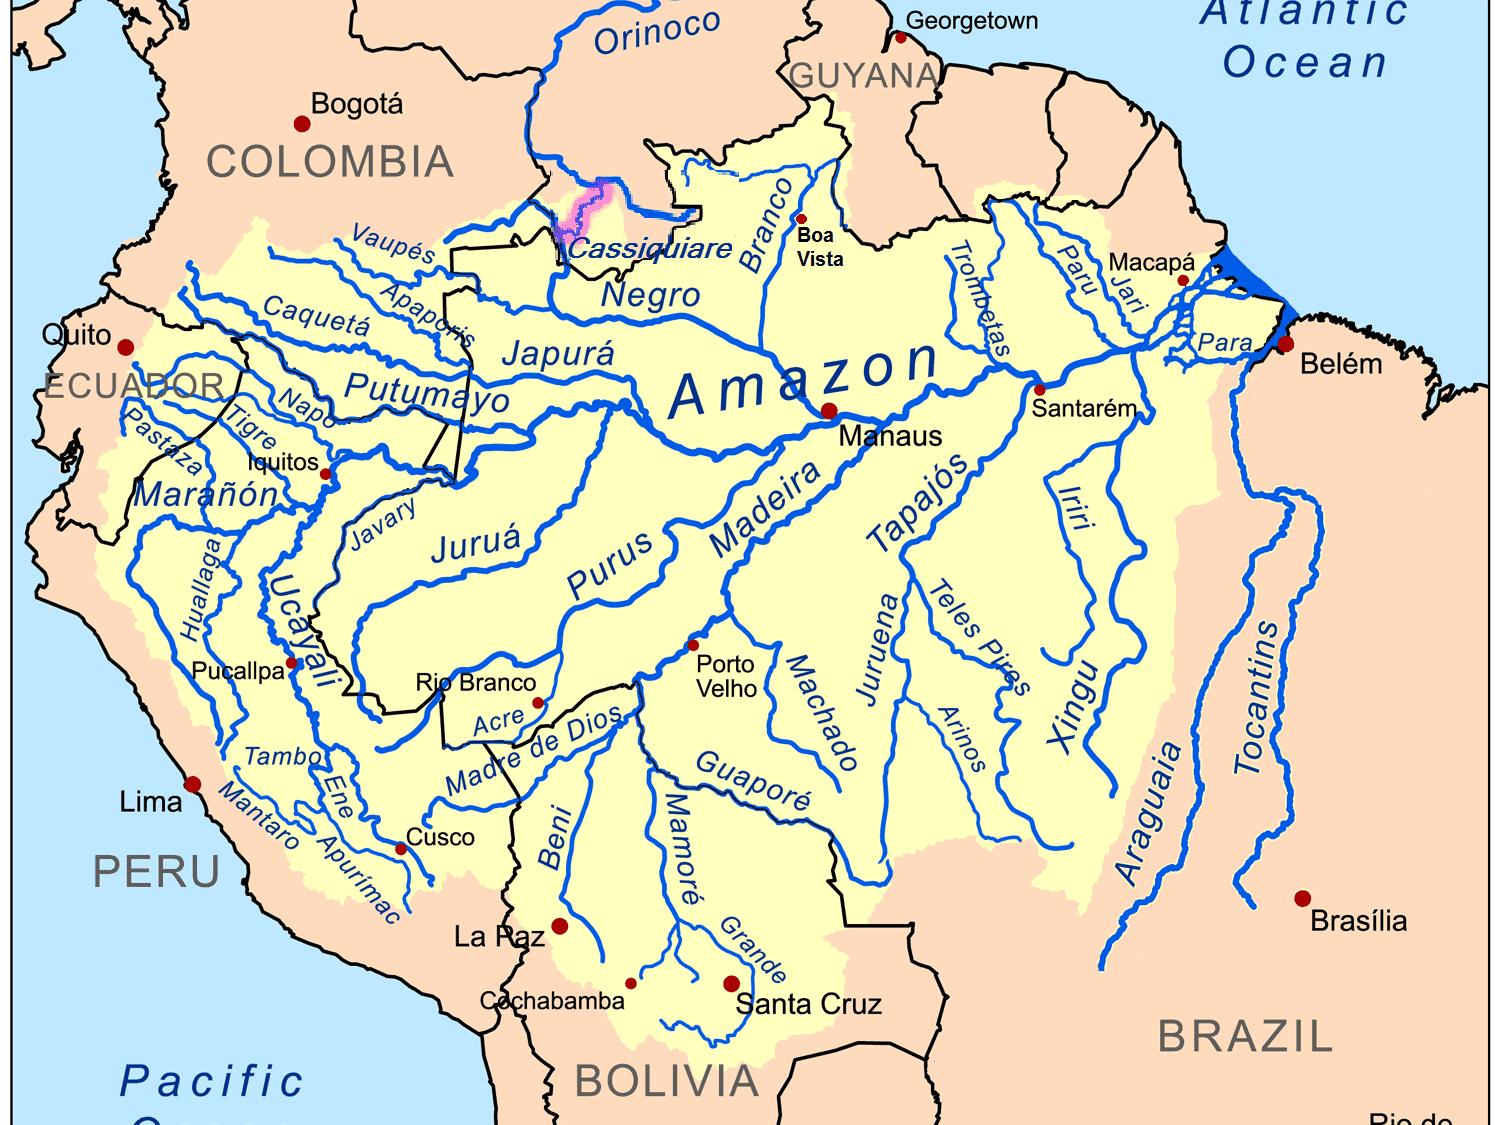 The 10 Longest Rivers in Peru Map Of Africa With Rivers Labeled on map of asia physical features, north america rivers map labeled, south america rivers map labeled, africa physical map labeled, south africa map labeled, map of sudan landforms, world maps with countries labeled, u.s. map with rivers labeled, map of ancient india with rivers labeled, world map with rivers labeled, africa with countries labeled, map of texas rivers labeled, map of the rivers in africa, map of united states with states labeled, map of asia countries, map of continents and islands, map of african empires, map of african countries, map of pacific ocean islands, map of egypt,